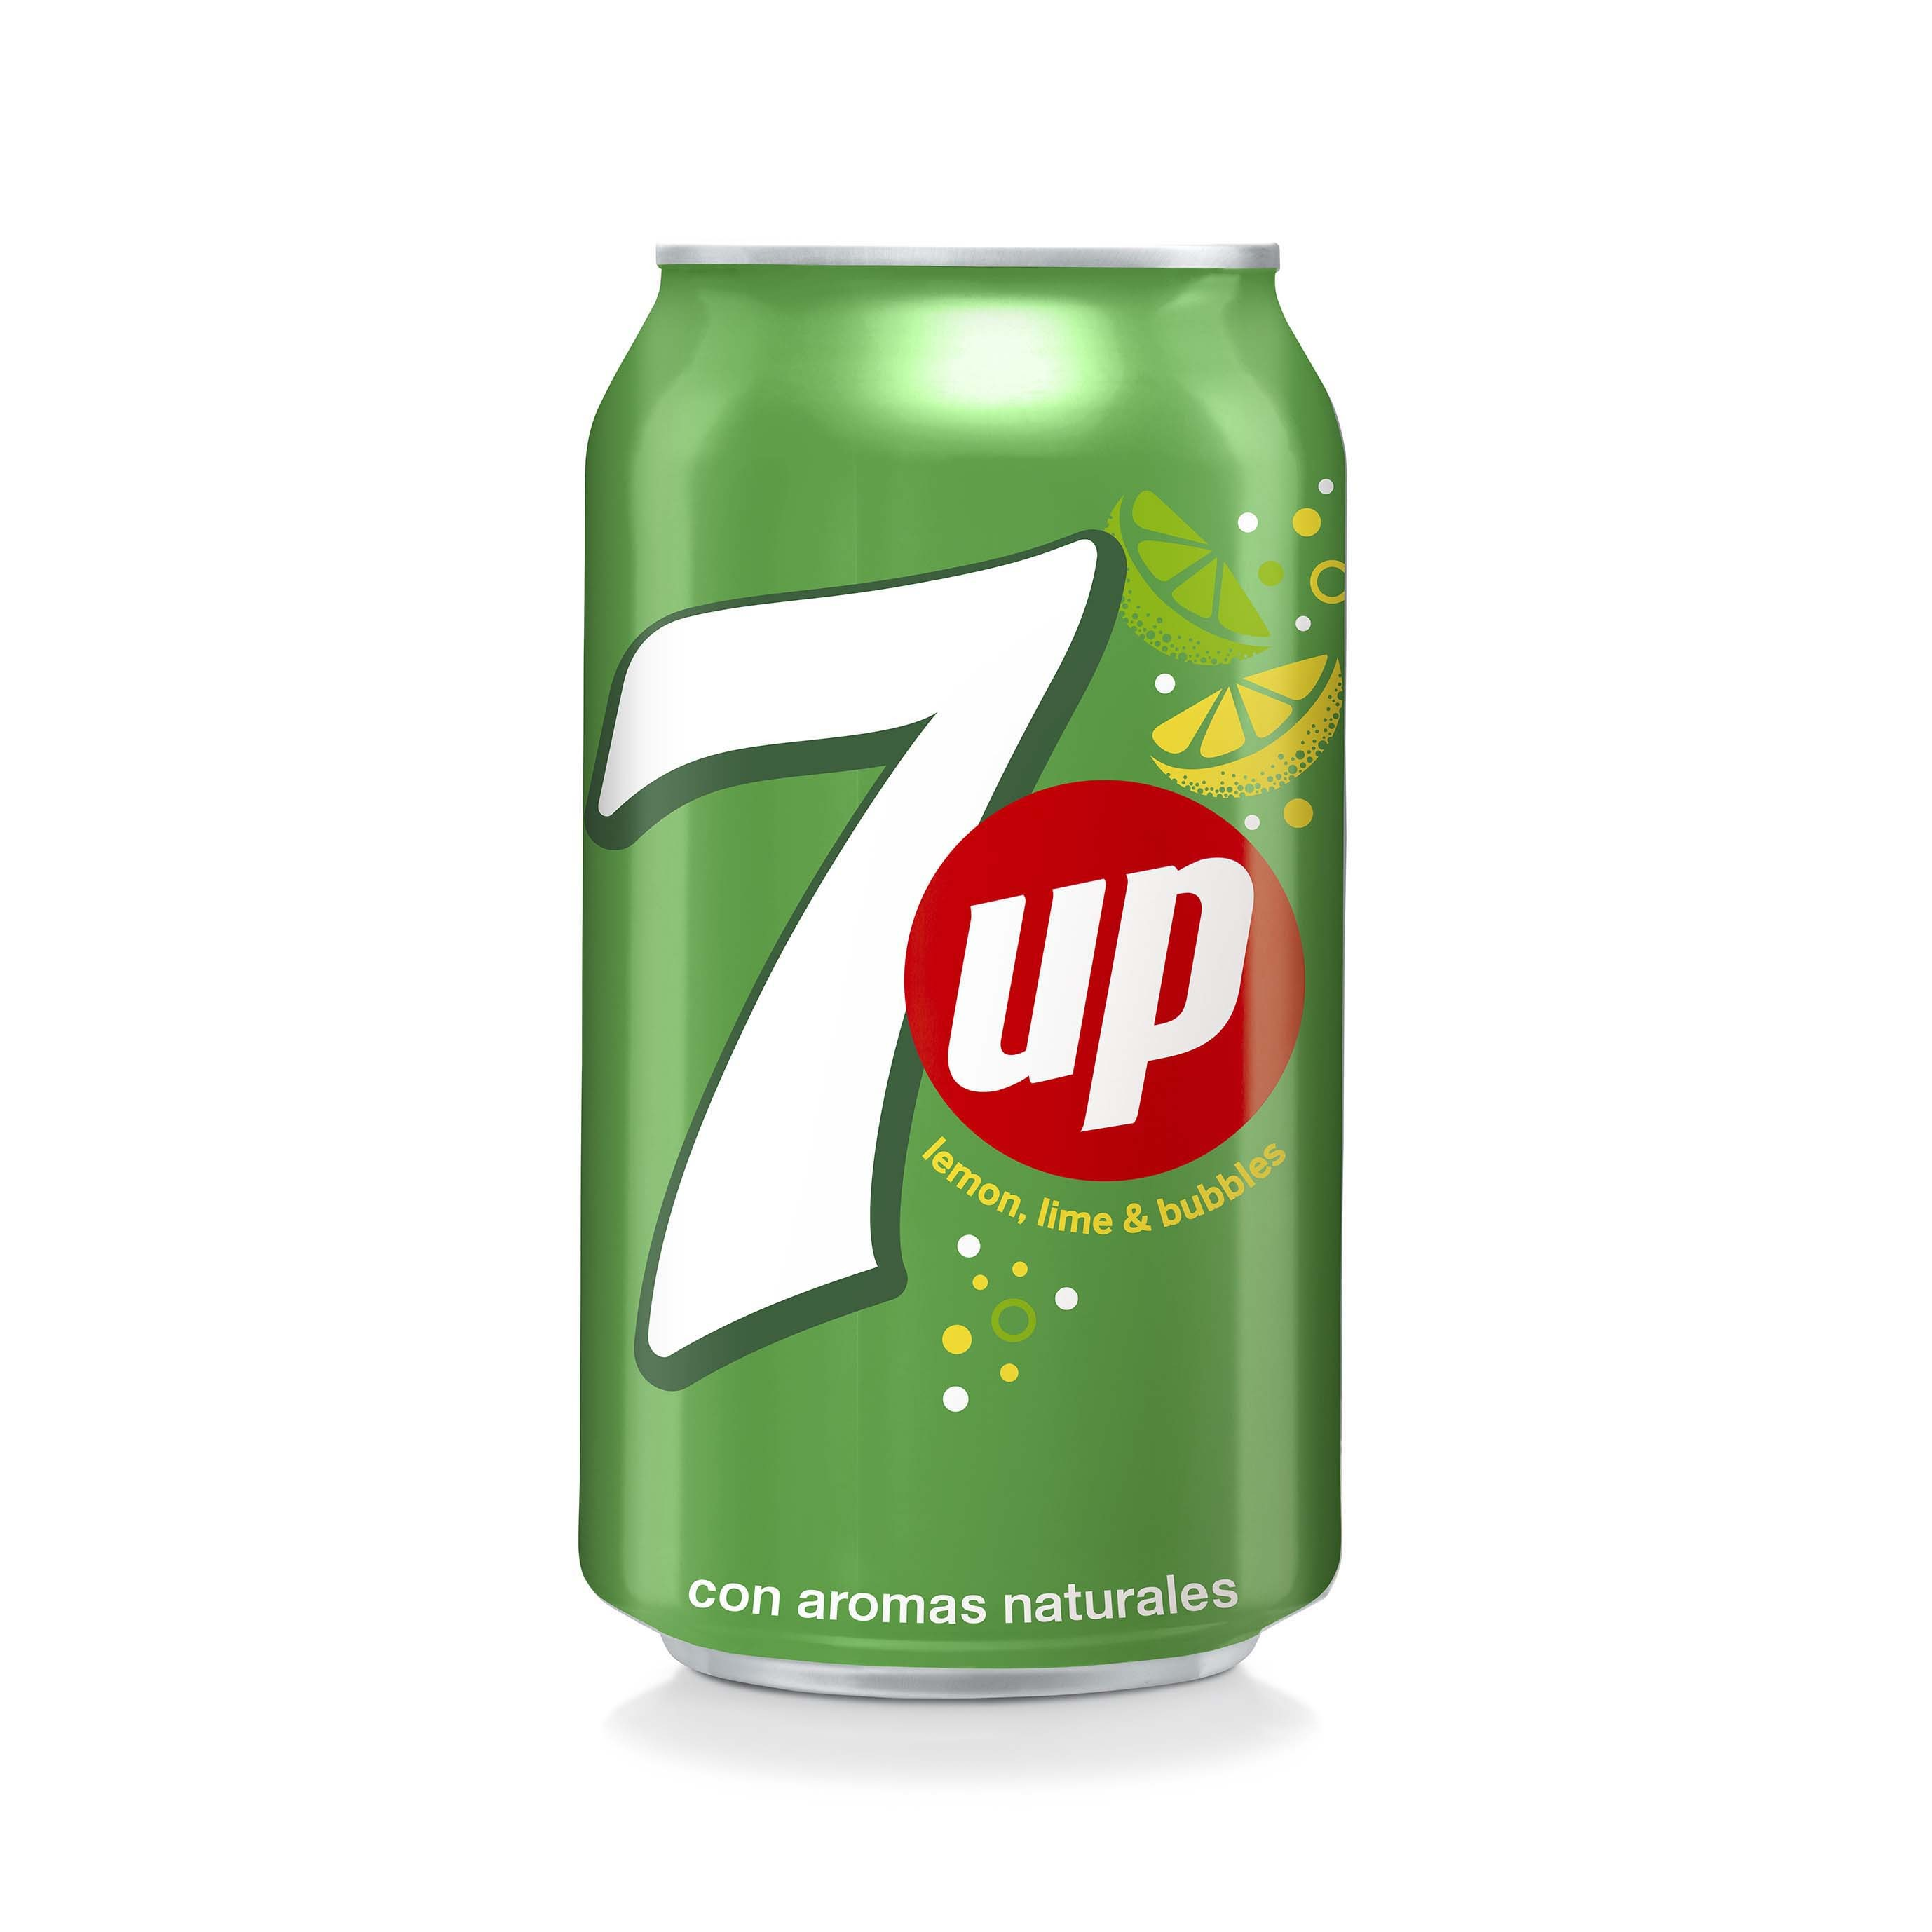 7up 7up regular 330ml lata de 33cl. en lata